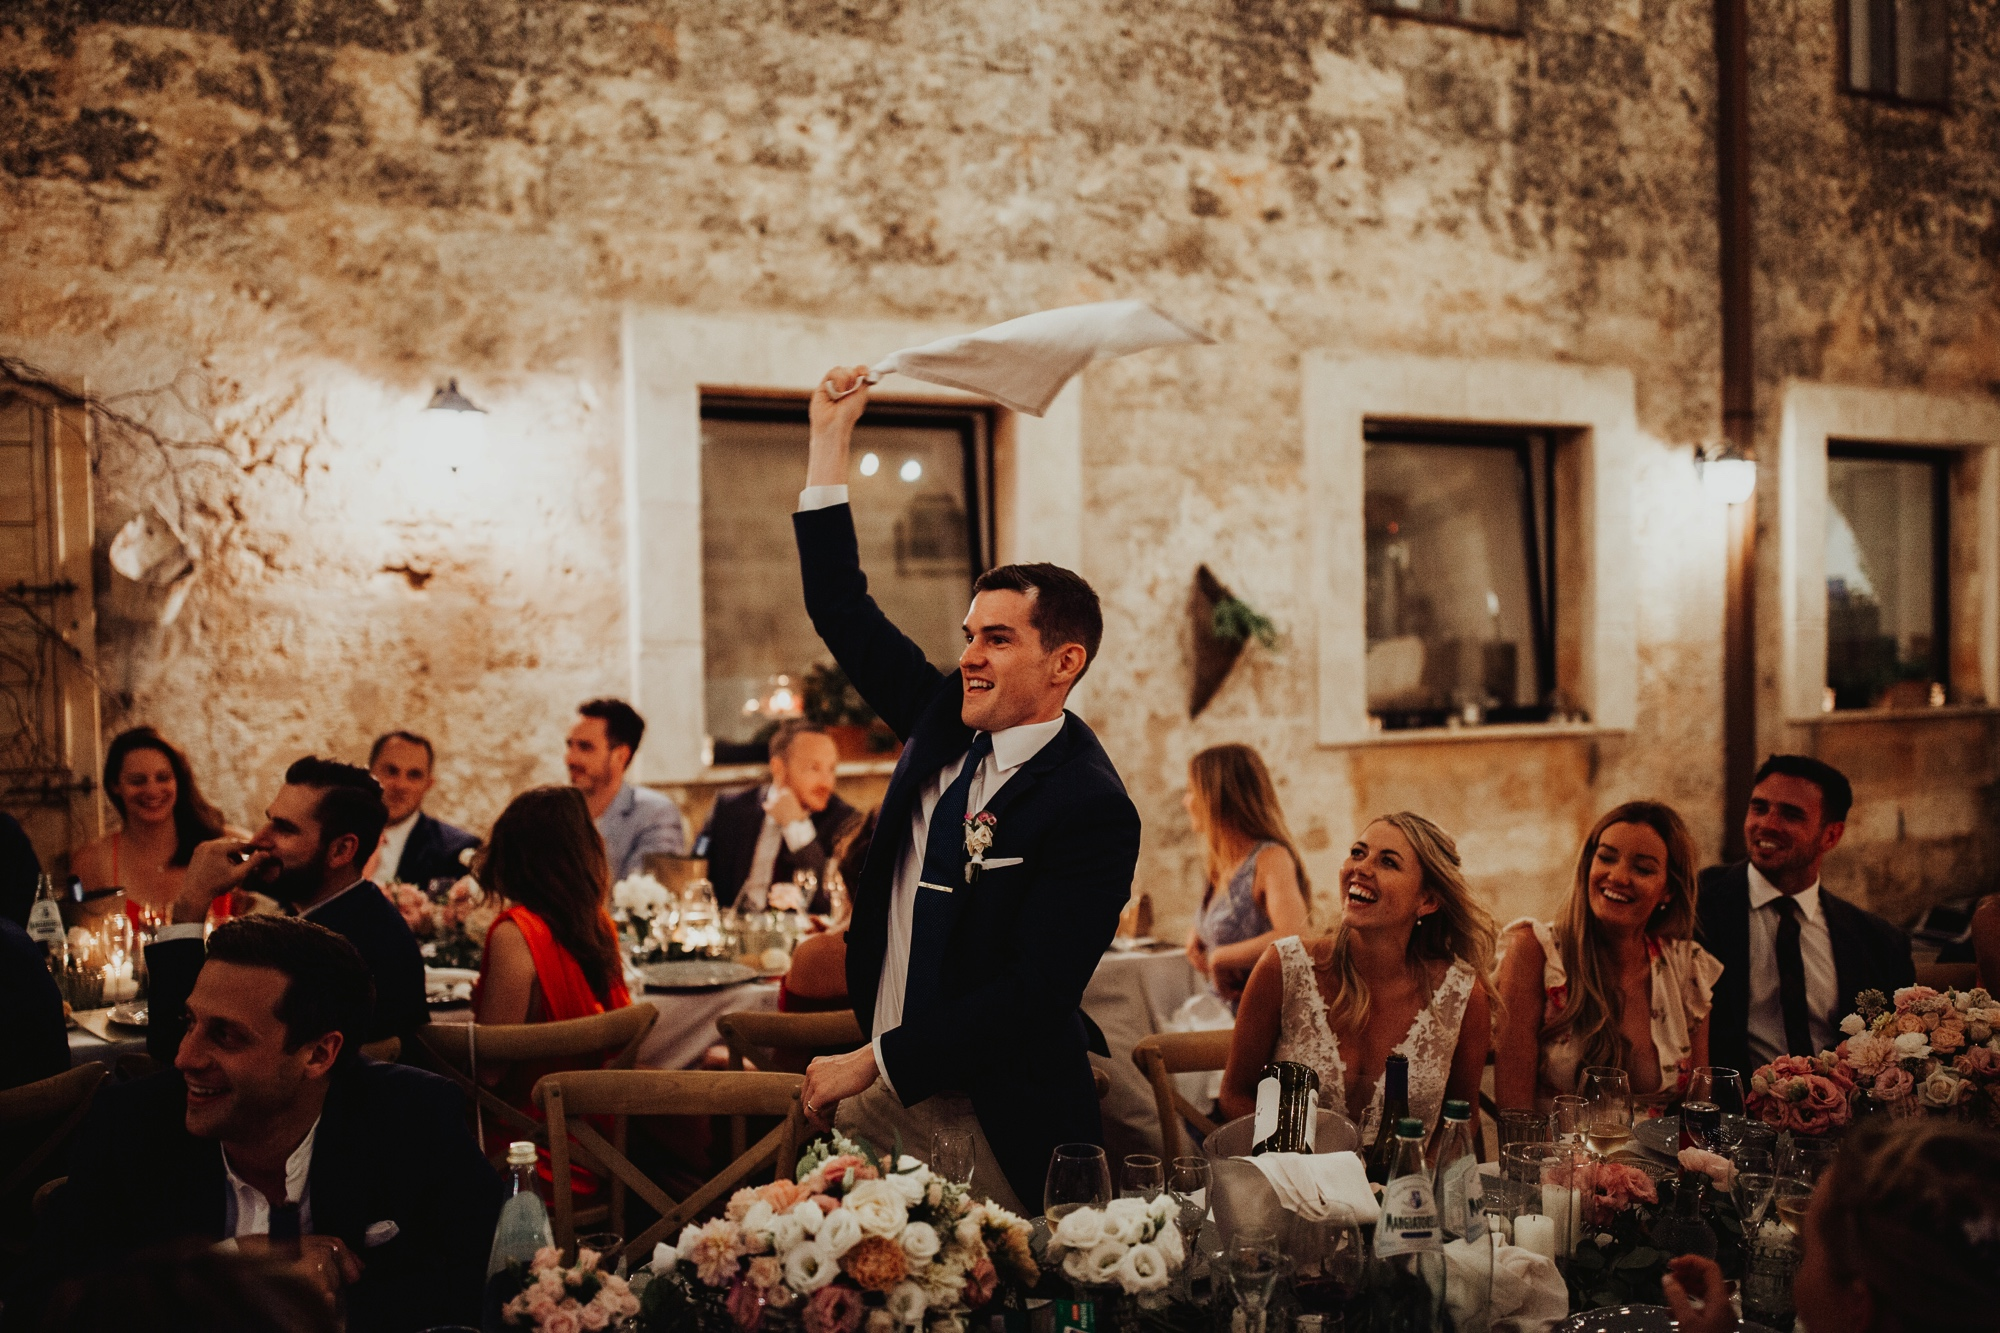 0000000076_Rob and Lucy-917_Weddings_Destination_Italy_got_Just_Engaged.jpg